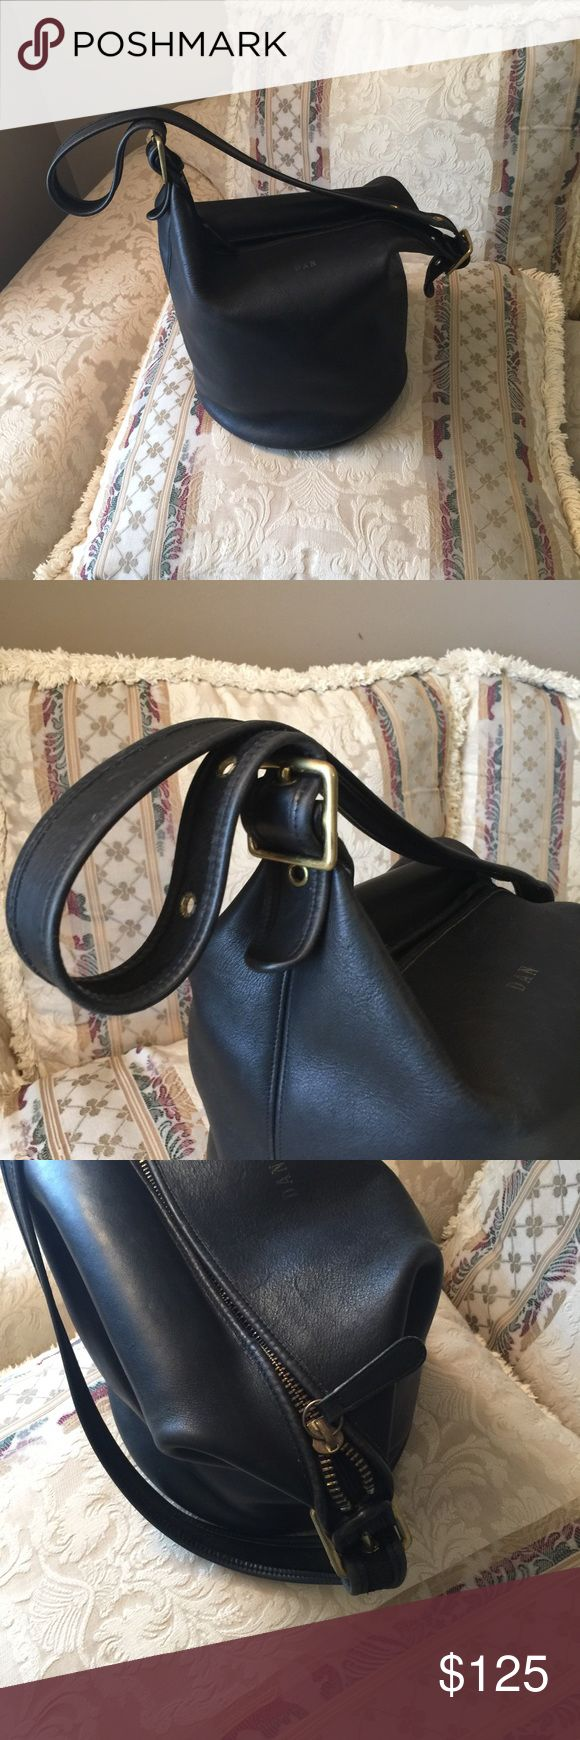 Coach Duffle bag VINTAGE Coach Duffle bag AUTHENTIC Vintage in great condition...no dust bag or tag, circa 1993😀 gold initials can be buffed away! Initials are faded. Coach Bags Shoulder Bags